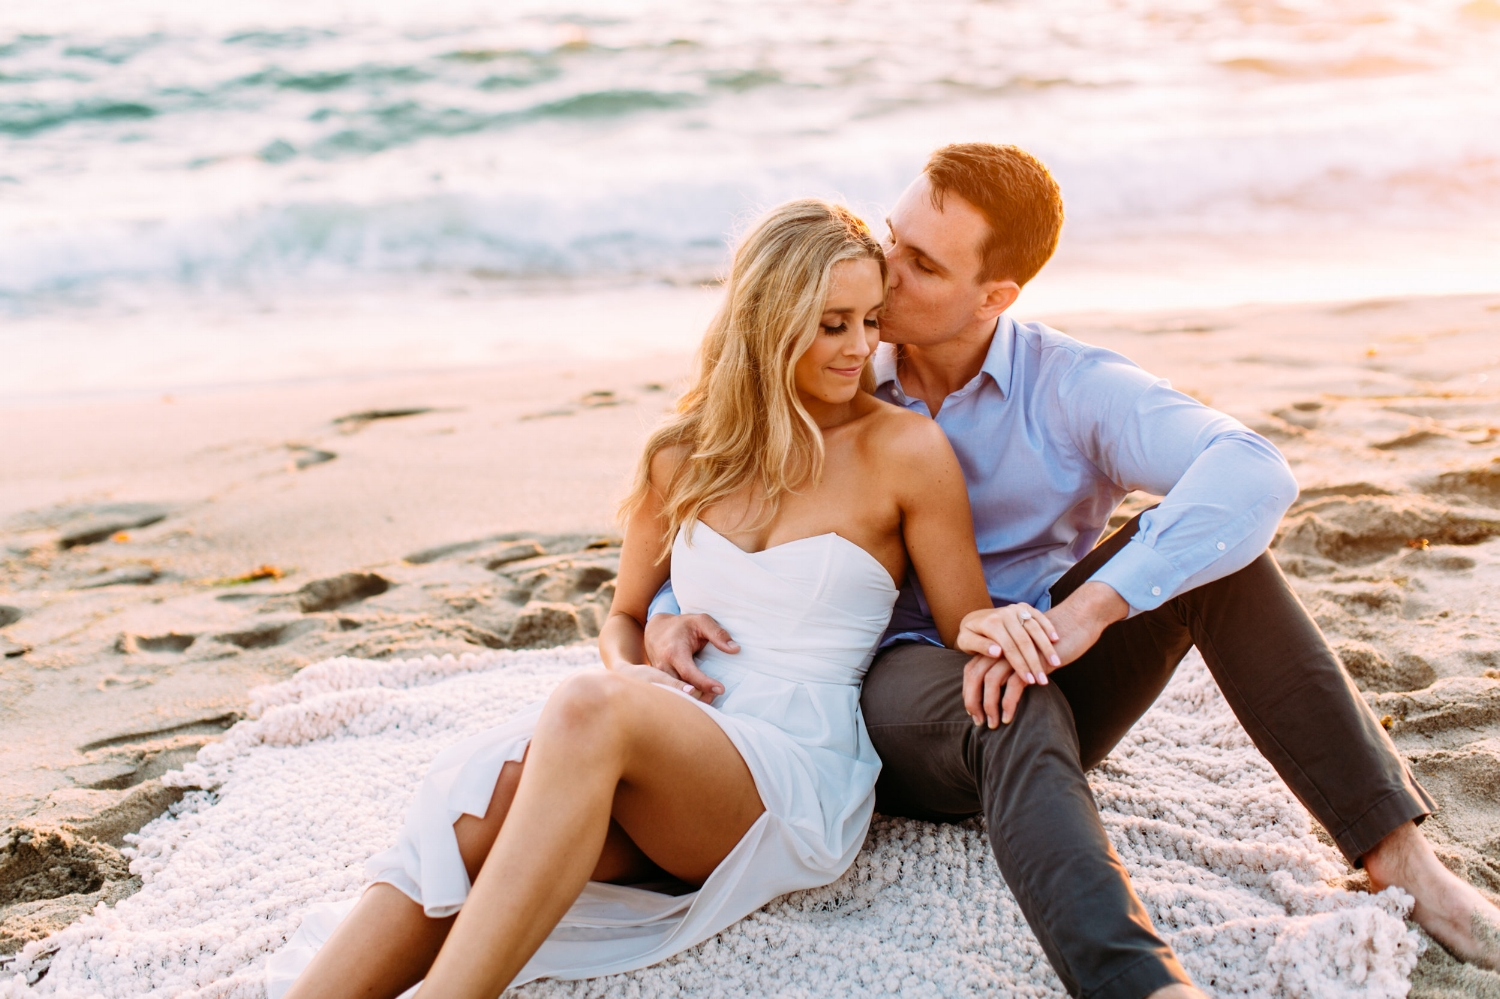 Engagement Picture Poses at Beach. Hair and Makeup done by Vanity Belle in Orange County (Costa Mesa) and San Diego (La Jolla).